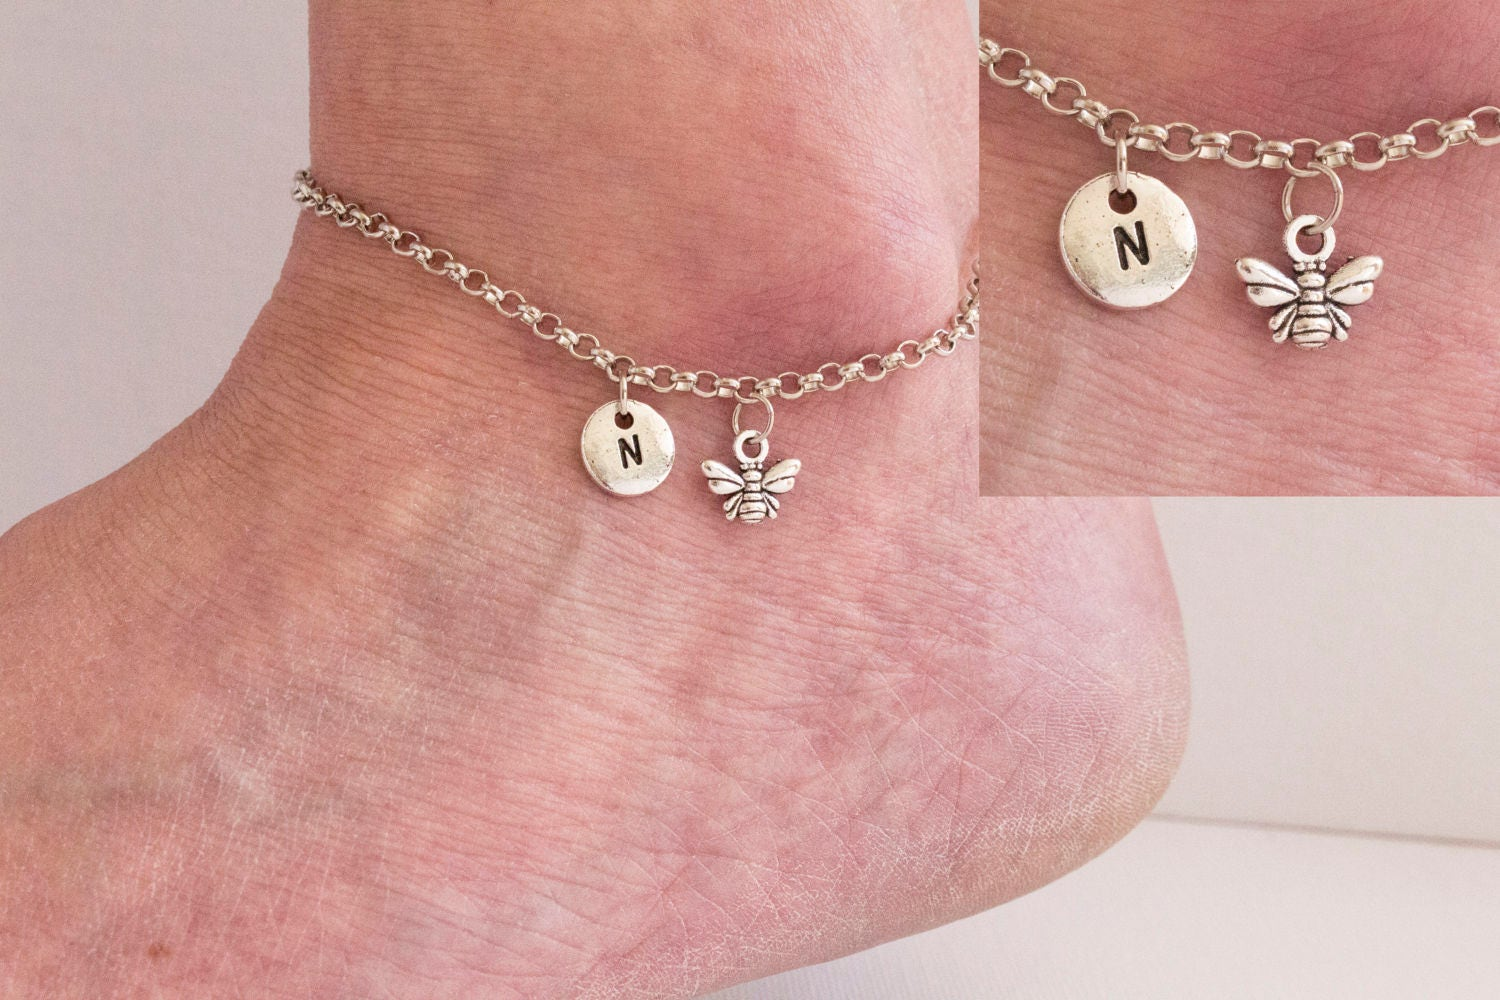 Silver initial bee anklet bumble bee anklet ankle bracelet silver ankletankletbeach jewellery ankletyoga jewellerySPBEEAN01